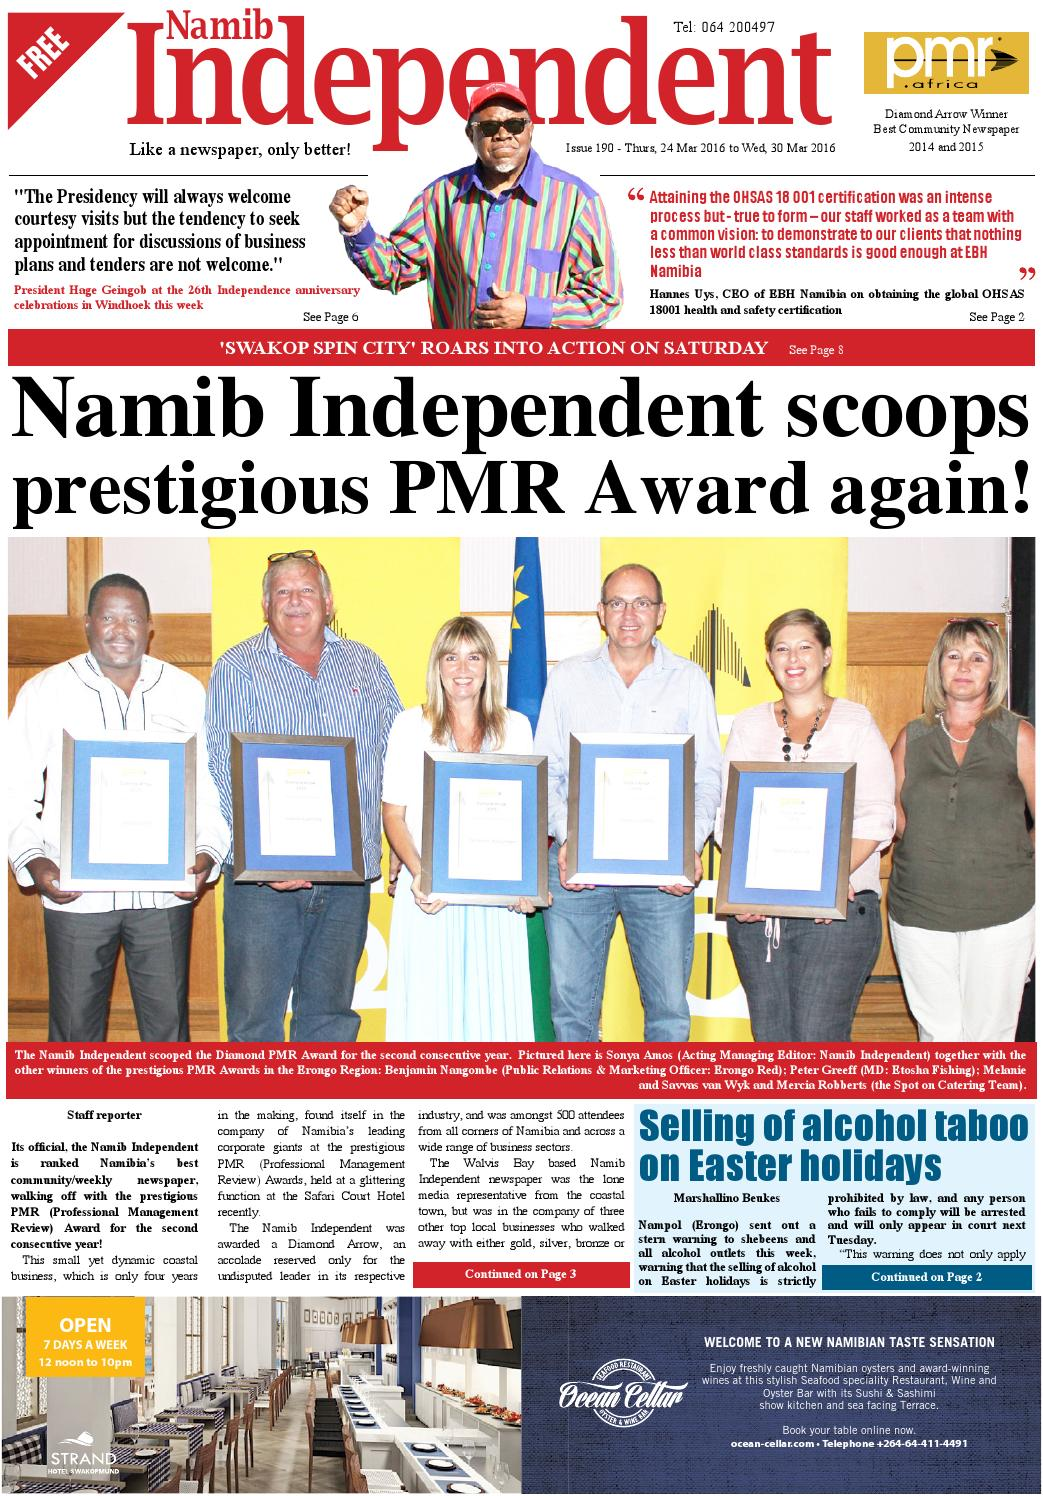 Namib independent issue 190 by The Namib Independent - issuu